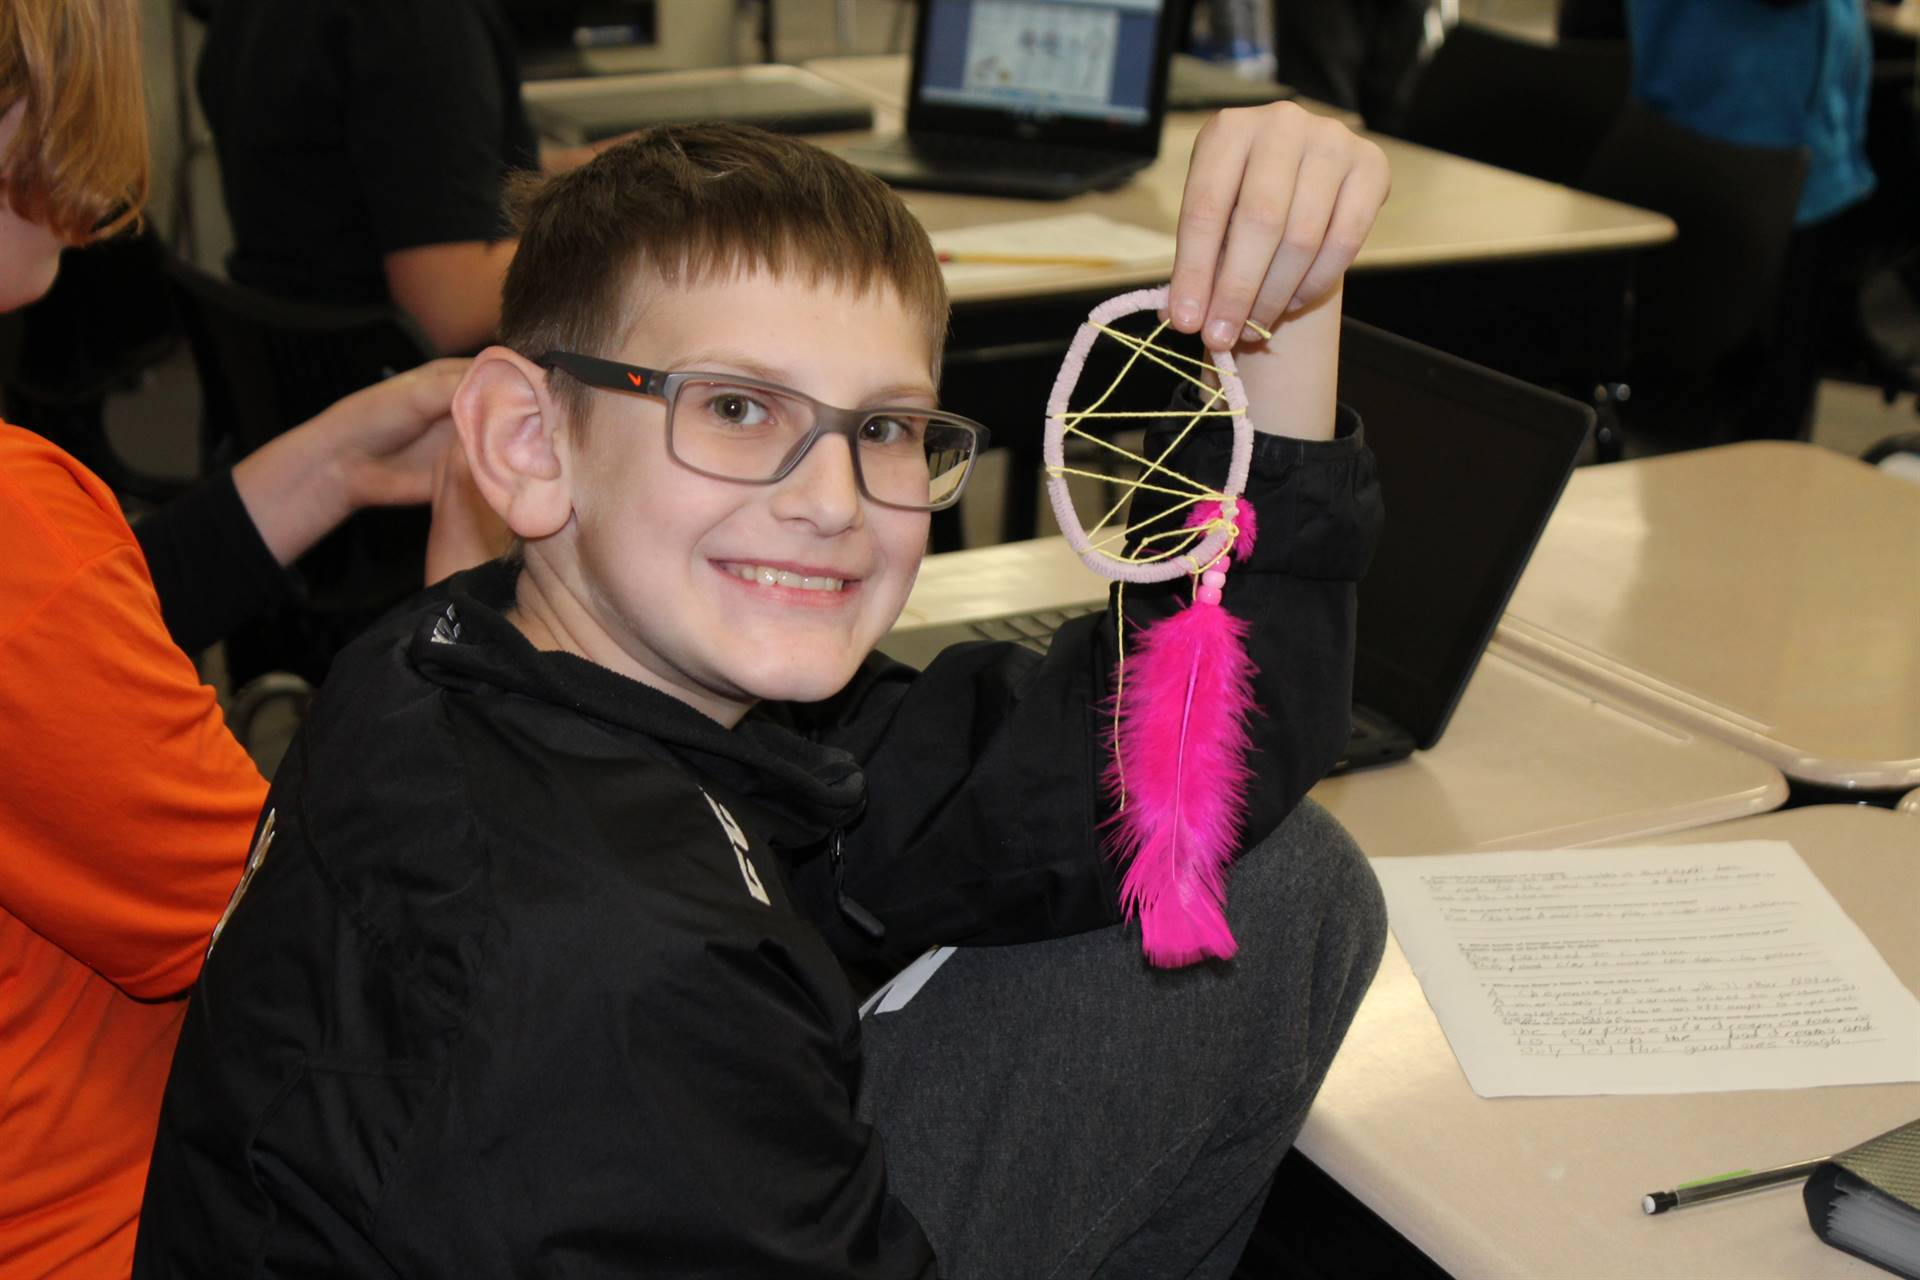 Student shows off the dream catcher he made